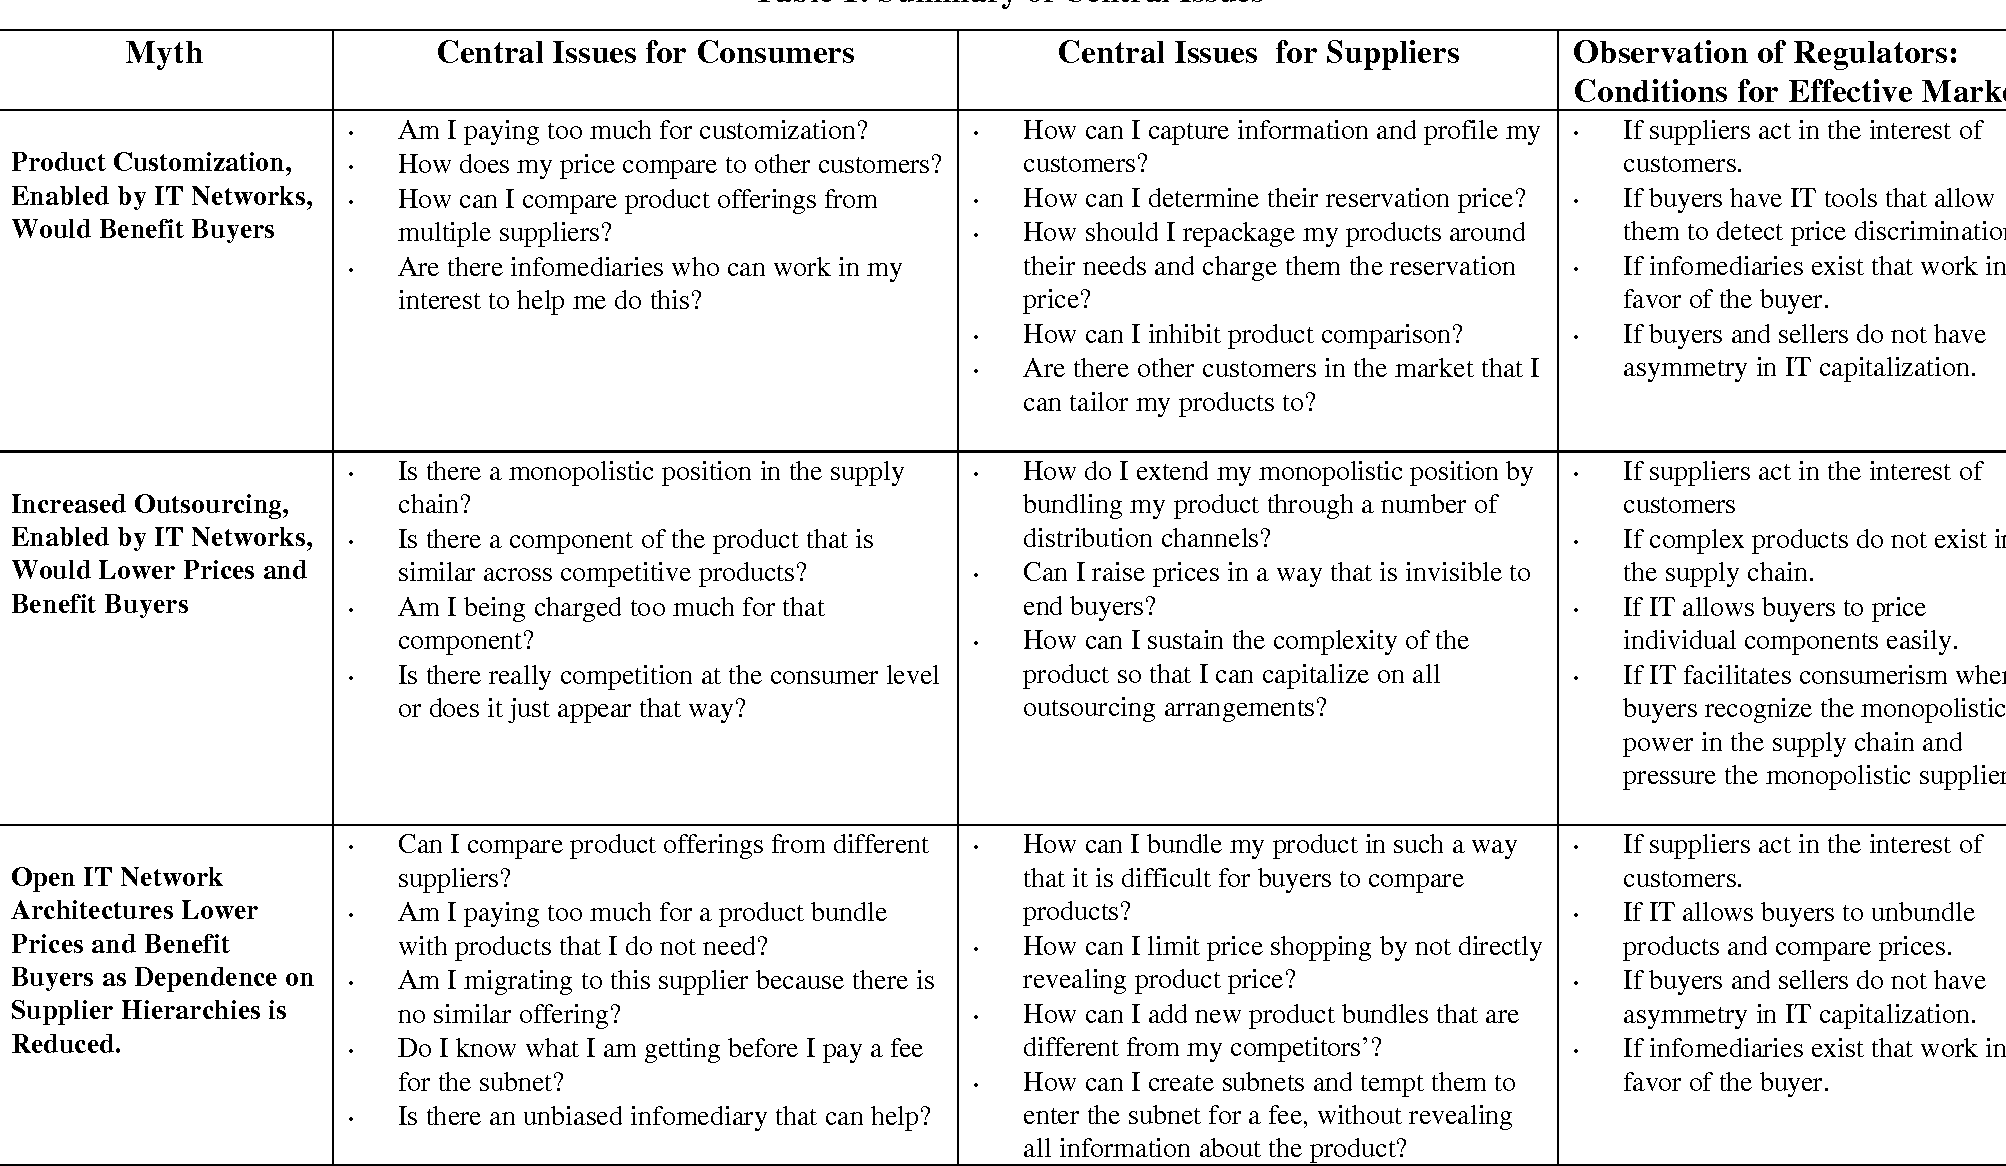 Table 1 from Six Myths of Information and Markets: Information